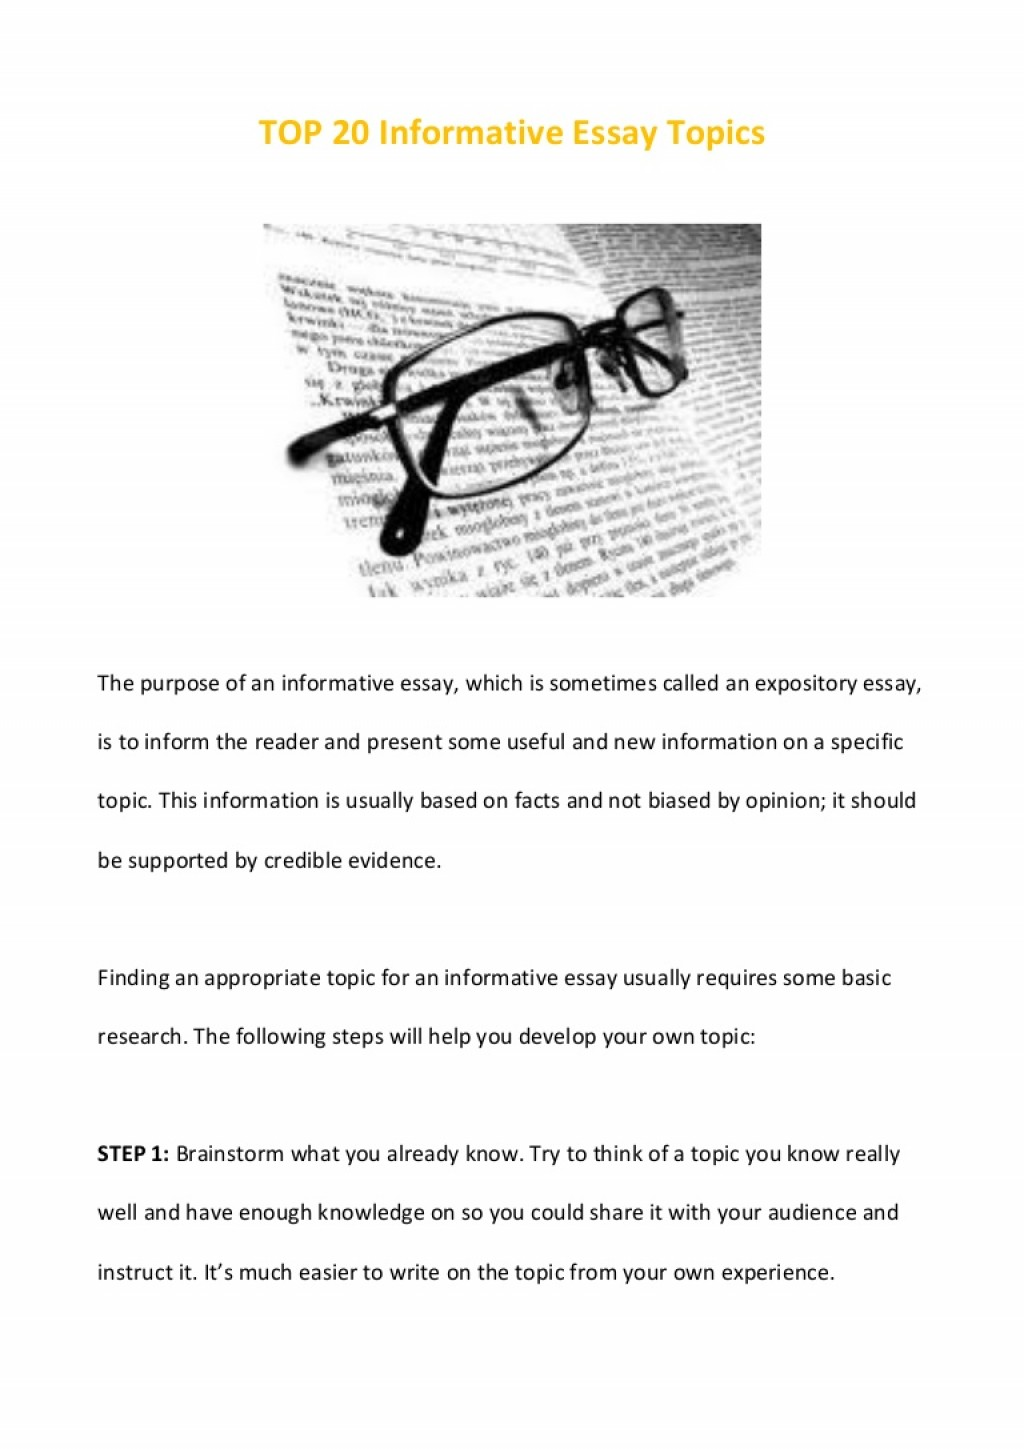 008 Essay Example Informative Ideas Top20informativeessaytopics Phpapp02 Thumbnail Wondrous Writing Prompts 5th Grade Common Core Expository 4th Pdf Large